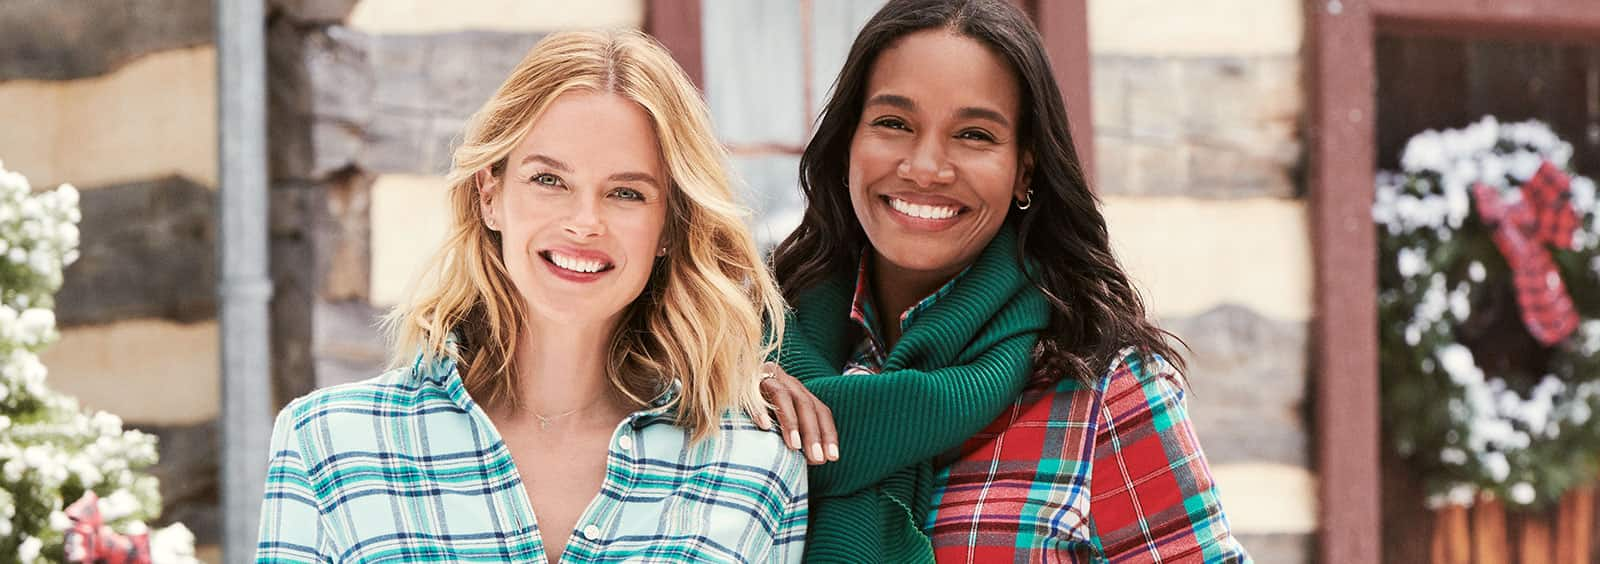 5 Different Ways to Wear a Flannel Shirt